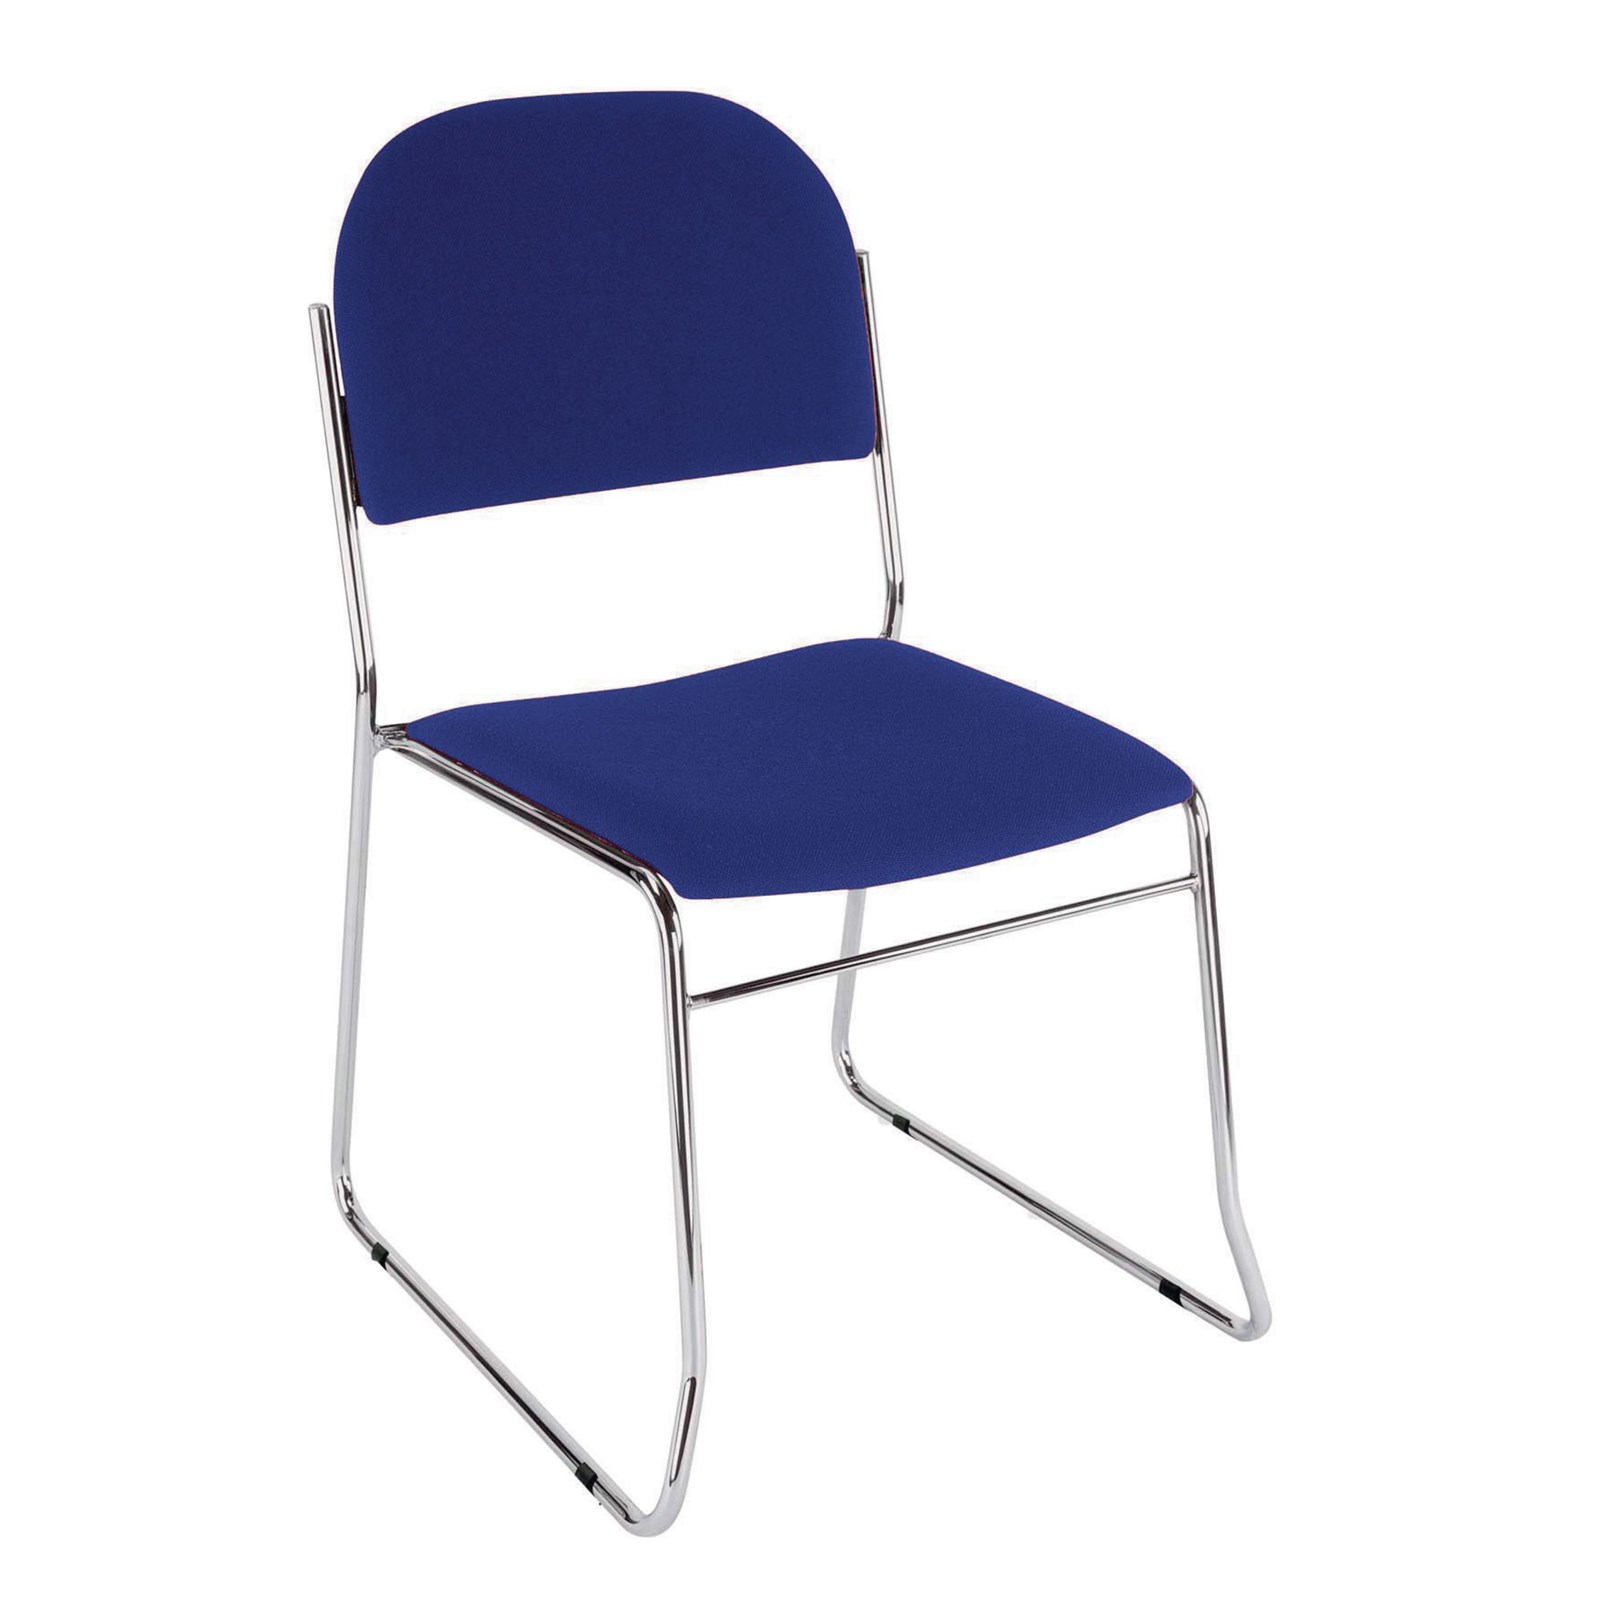 Room Essentials Upholstered Stacking Chair Great Home Interior and